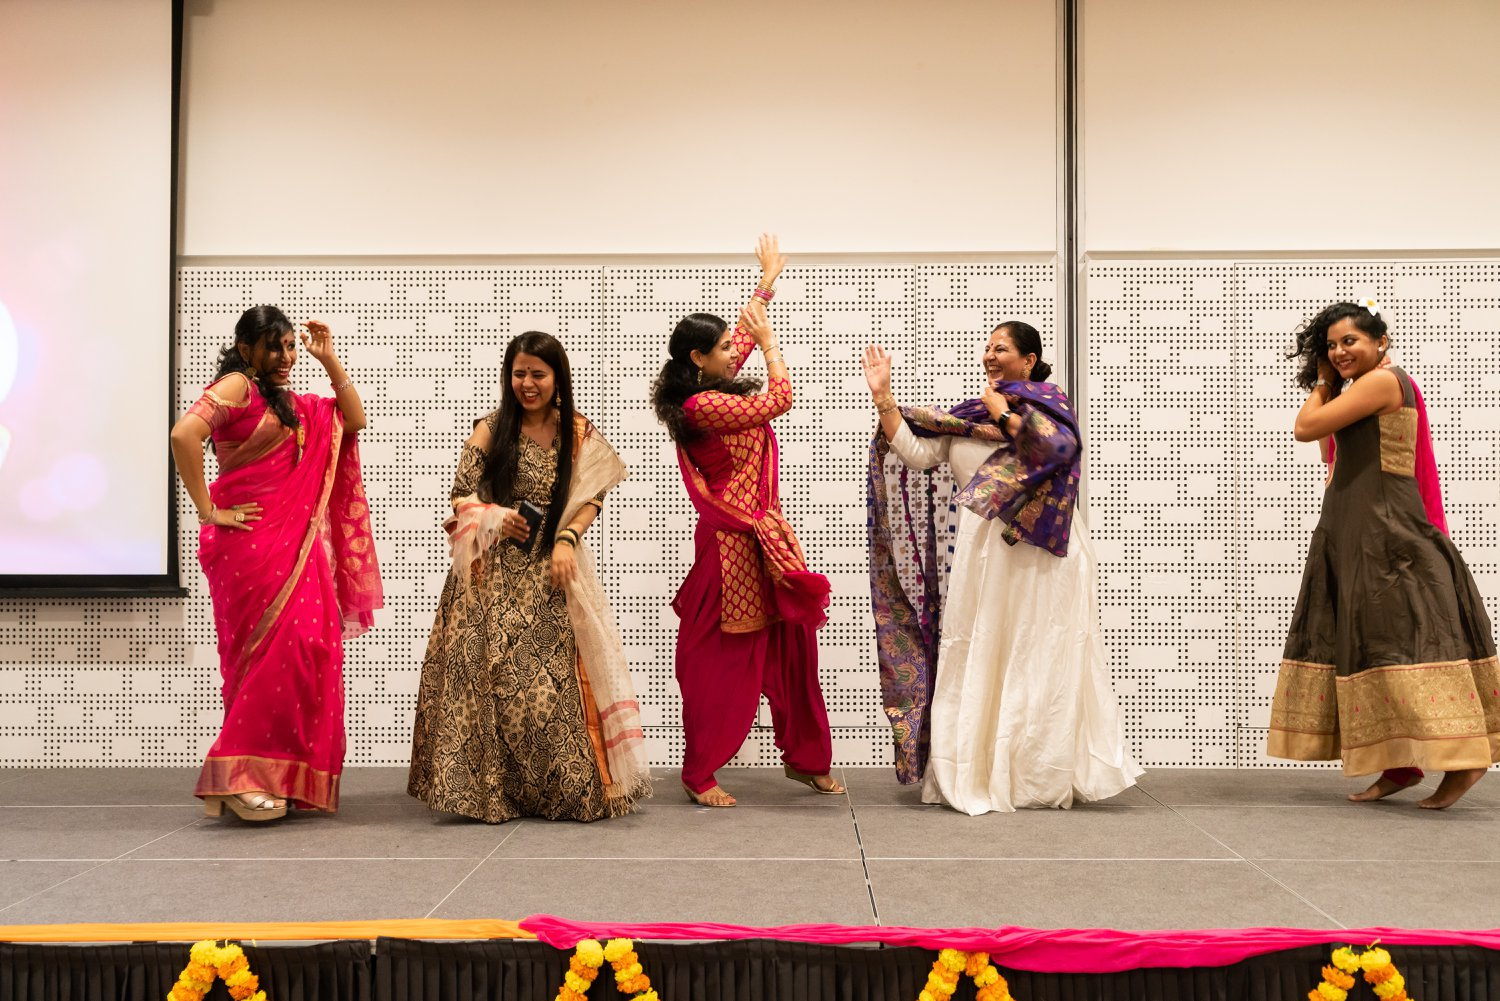 Sheena n Ruchita dancing on stage.jpg